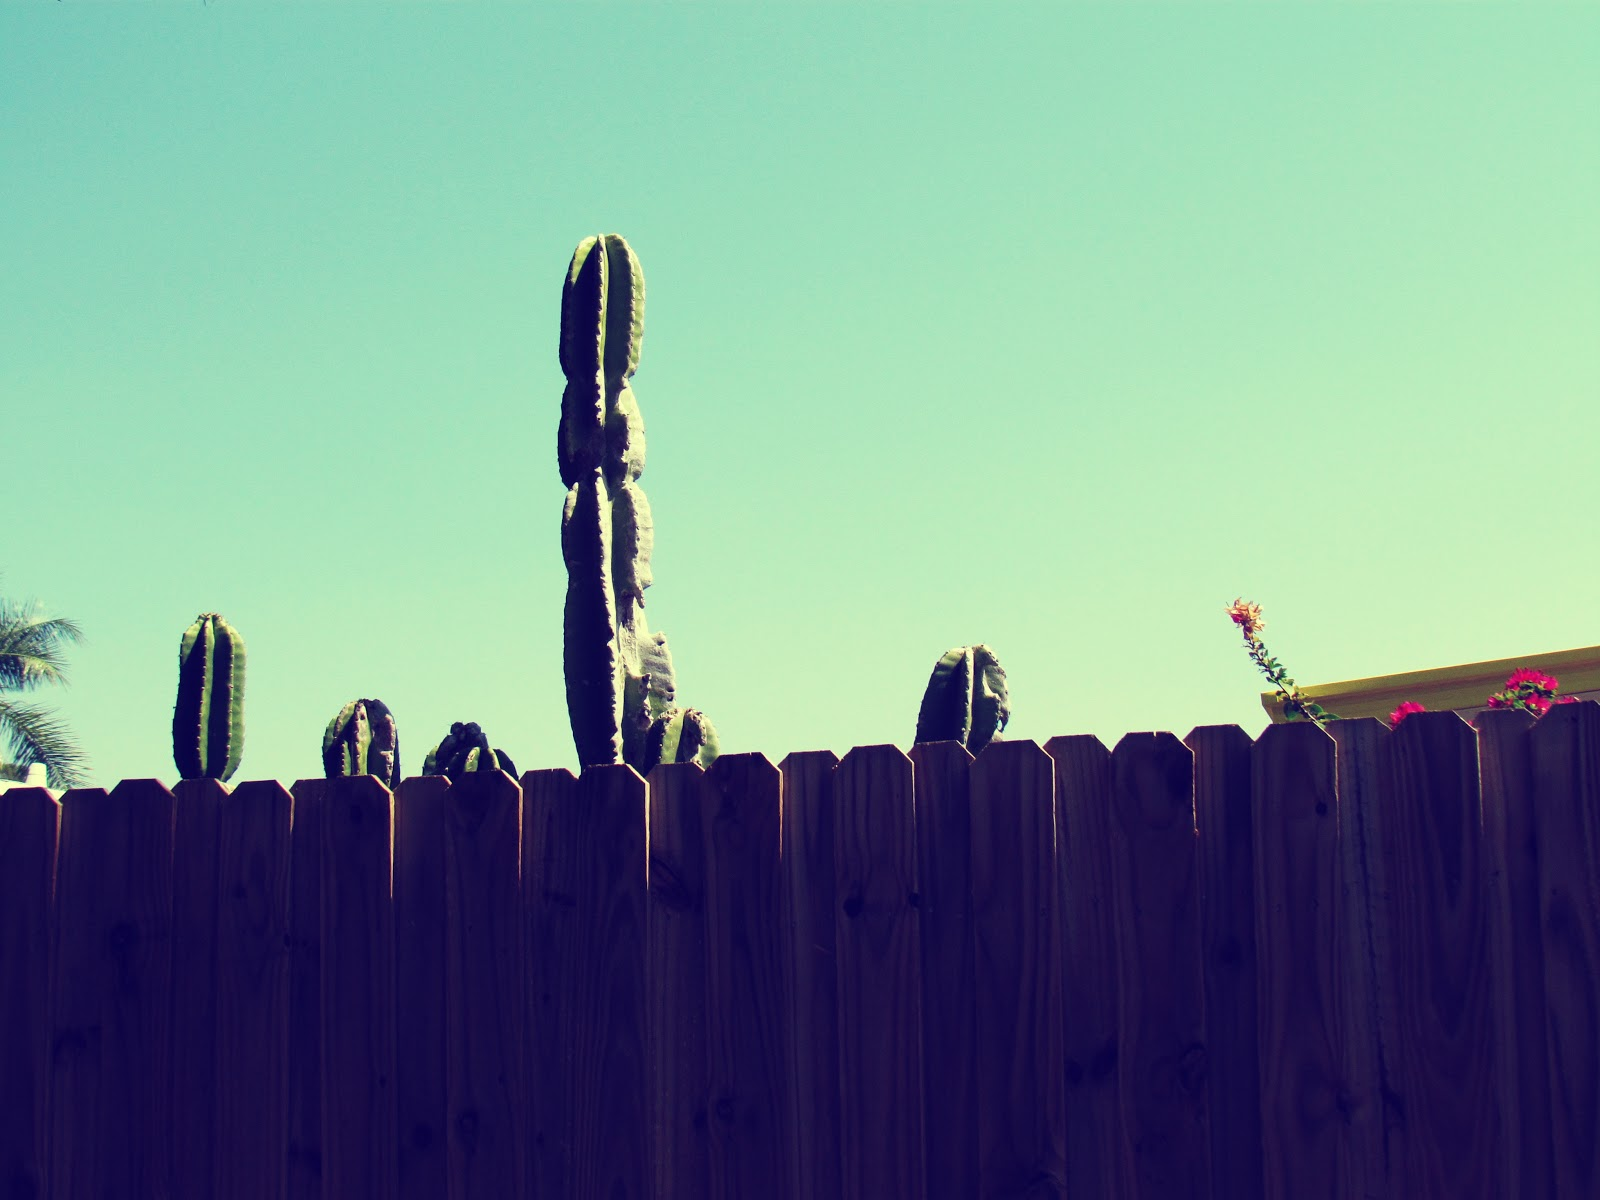 A giant green saguaro cactus with hot house flowers on a wooden fence in the backyard overlooking a nature perserve in Florida